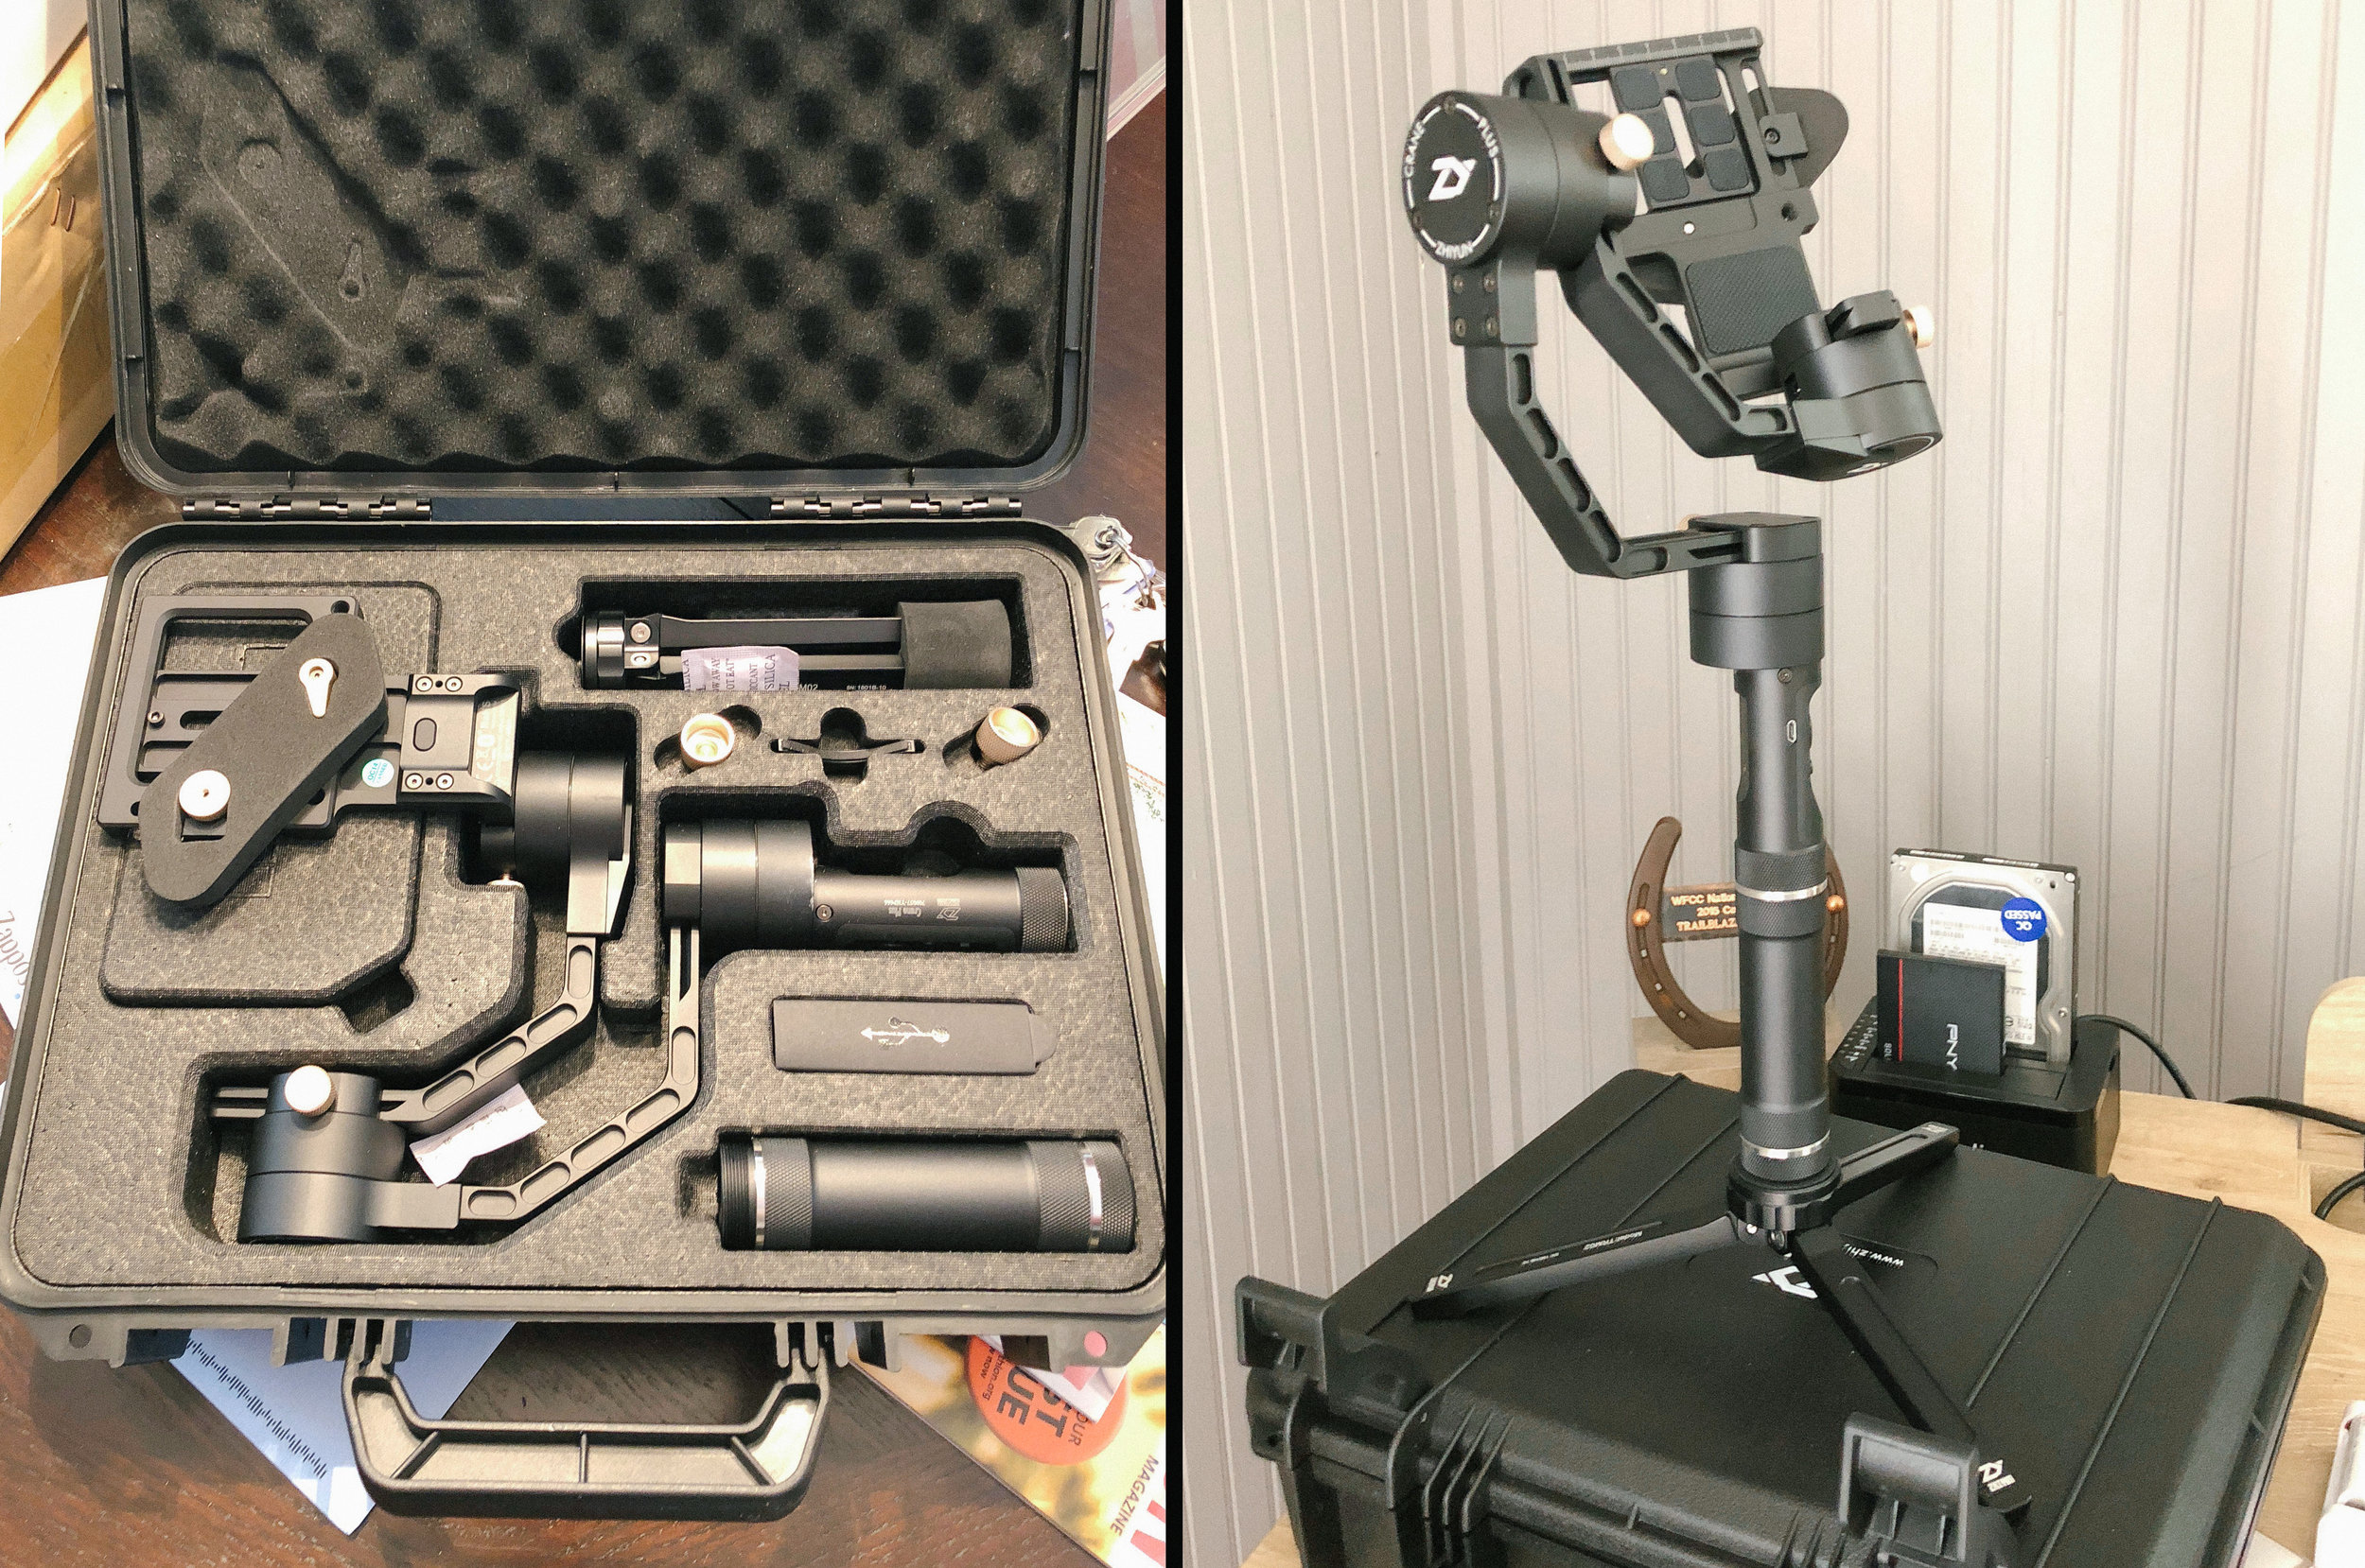 The Zhiyun Crane Plus includes a robust carrying case that conveniently housed everything we needed to shoot. Assembly is quick and straightforward.